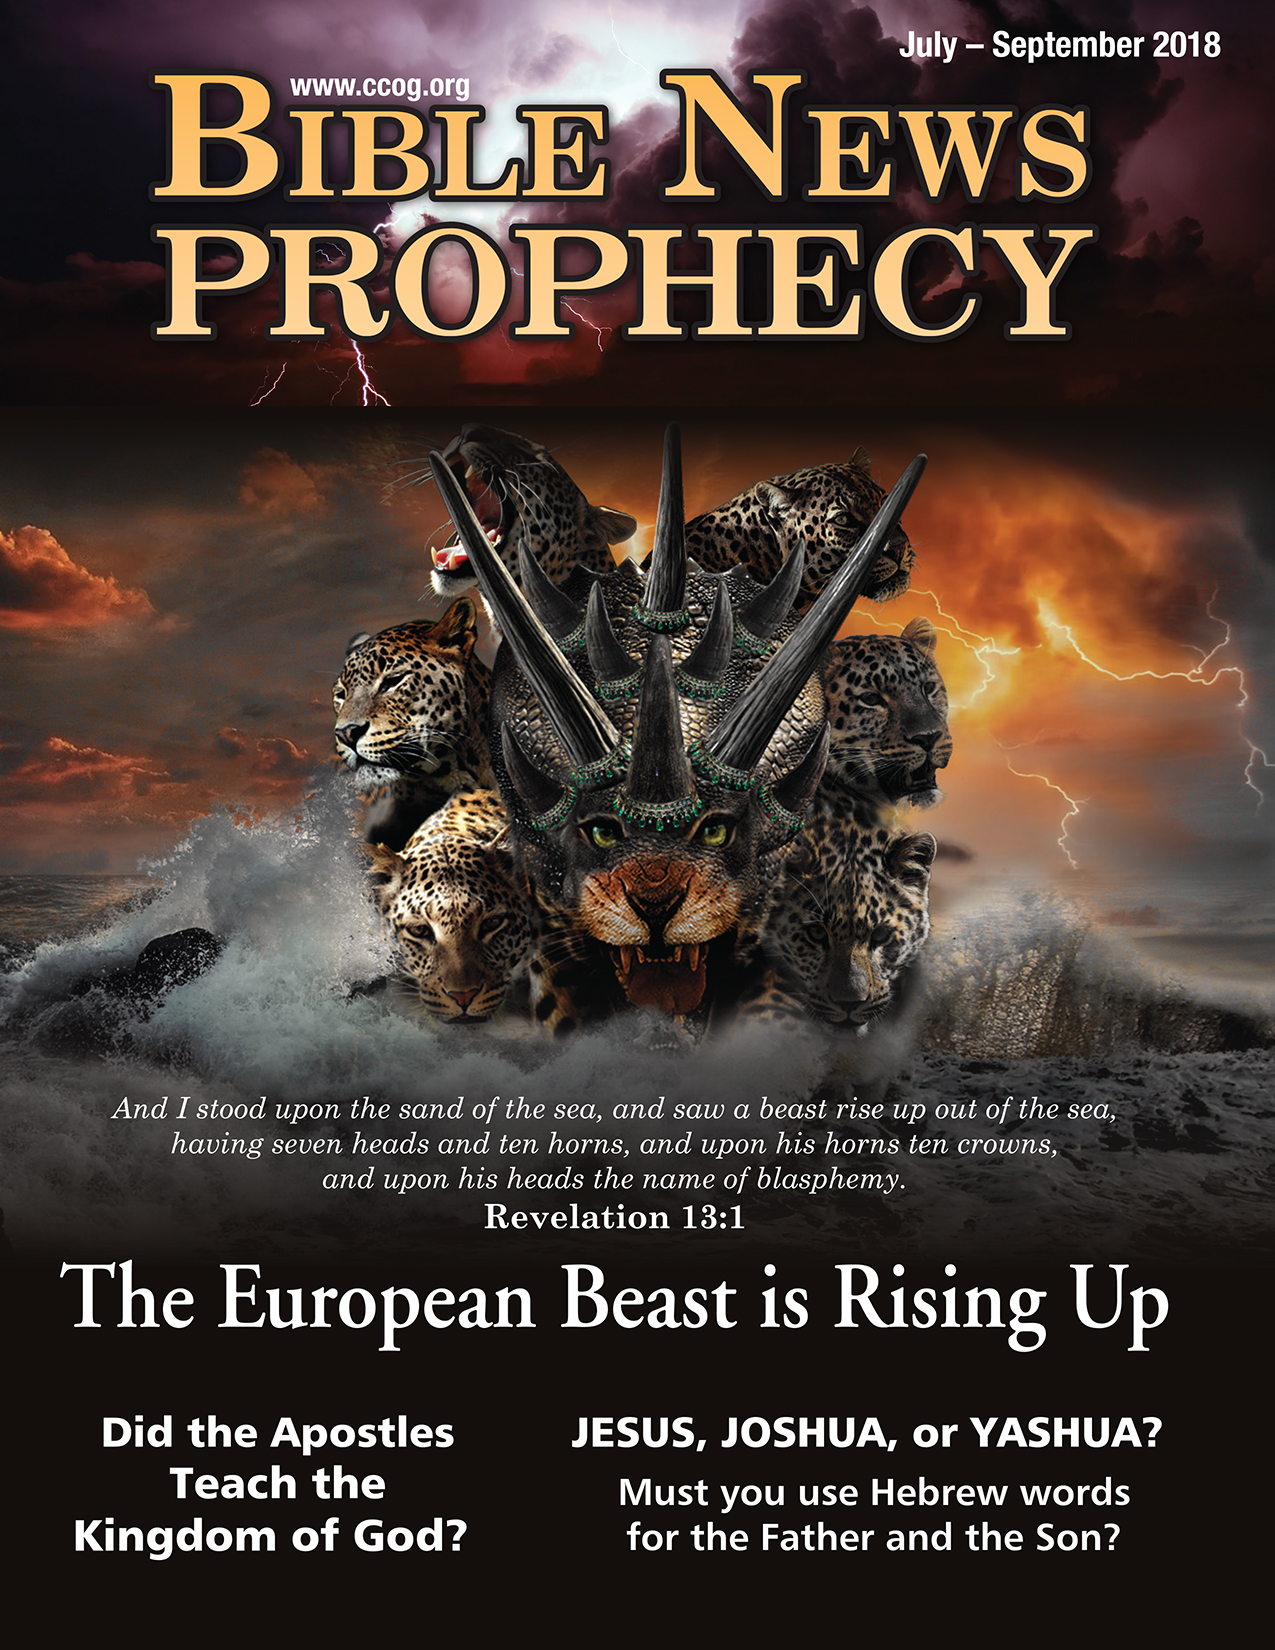 BibleNewsProphecy July-October 2018: The European Beast is Rising Up